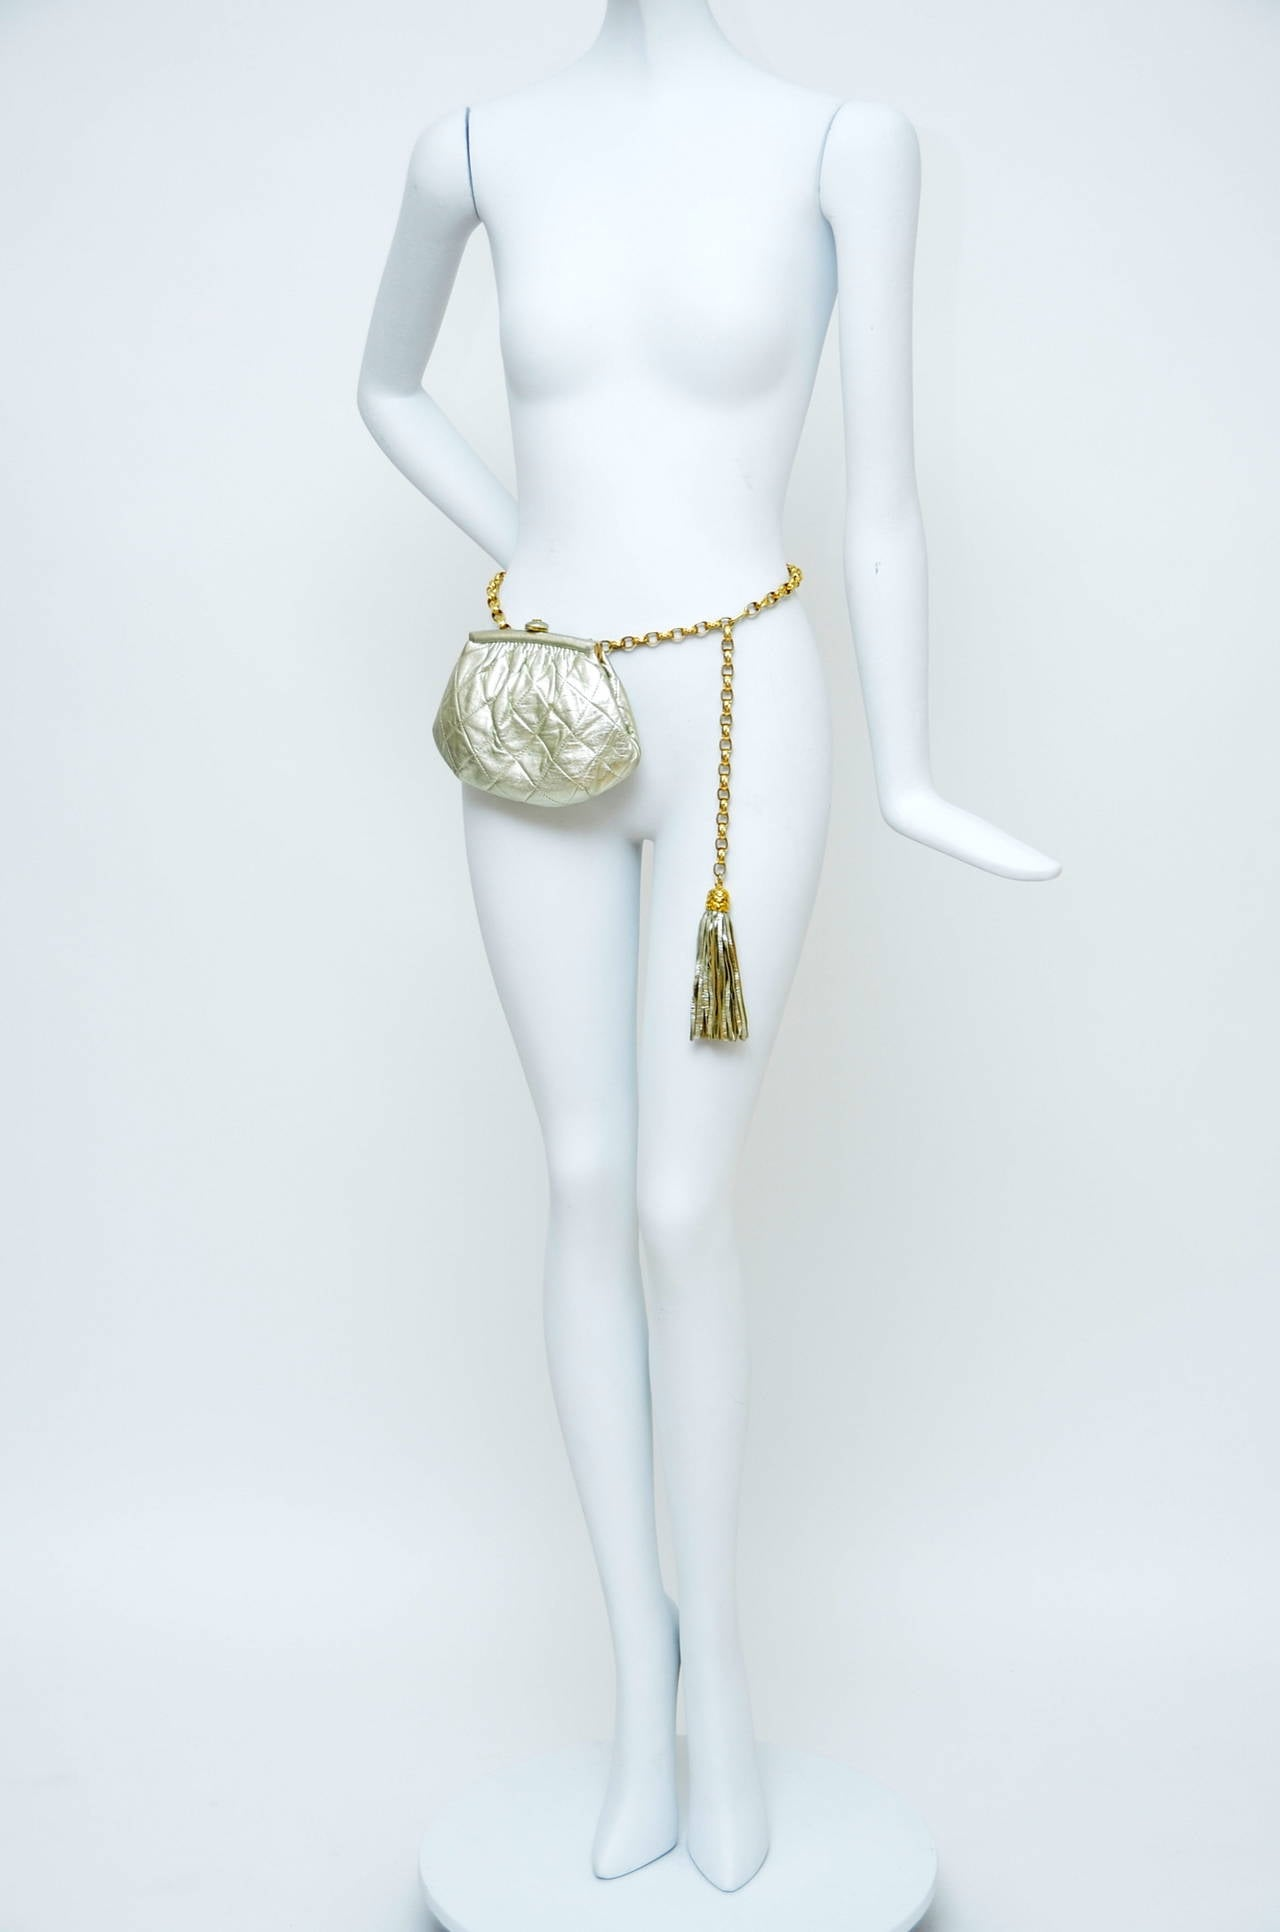 Chanel Vintage Waist Evening  Bag Clutch With Tassel For Sale 4